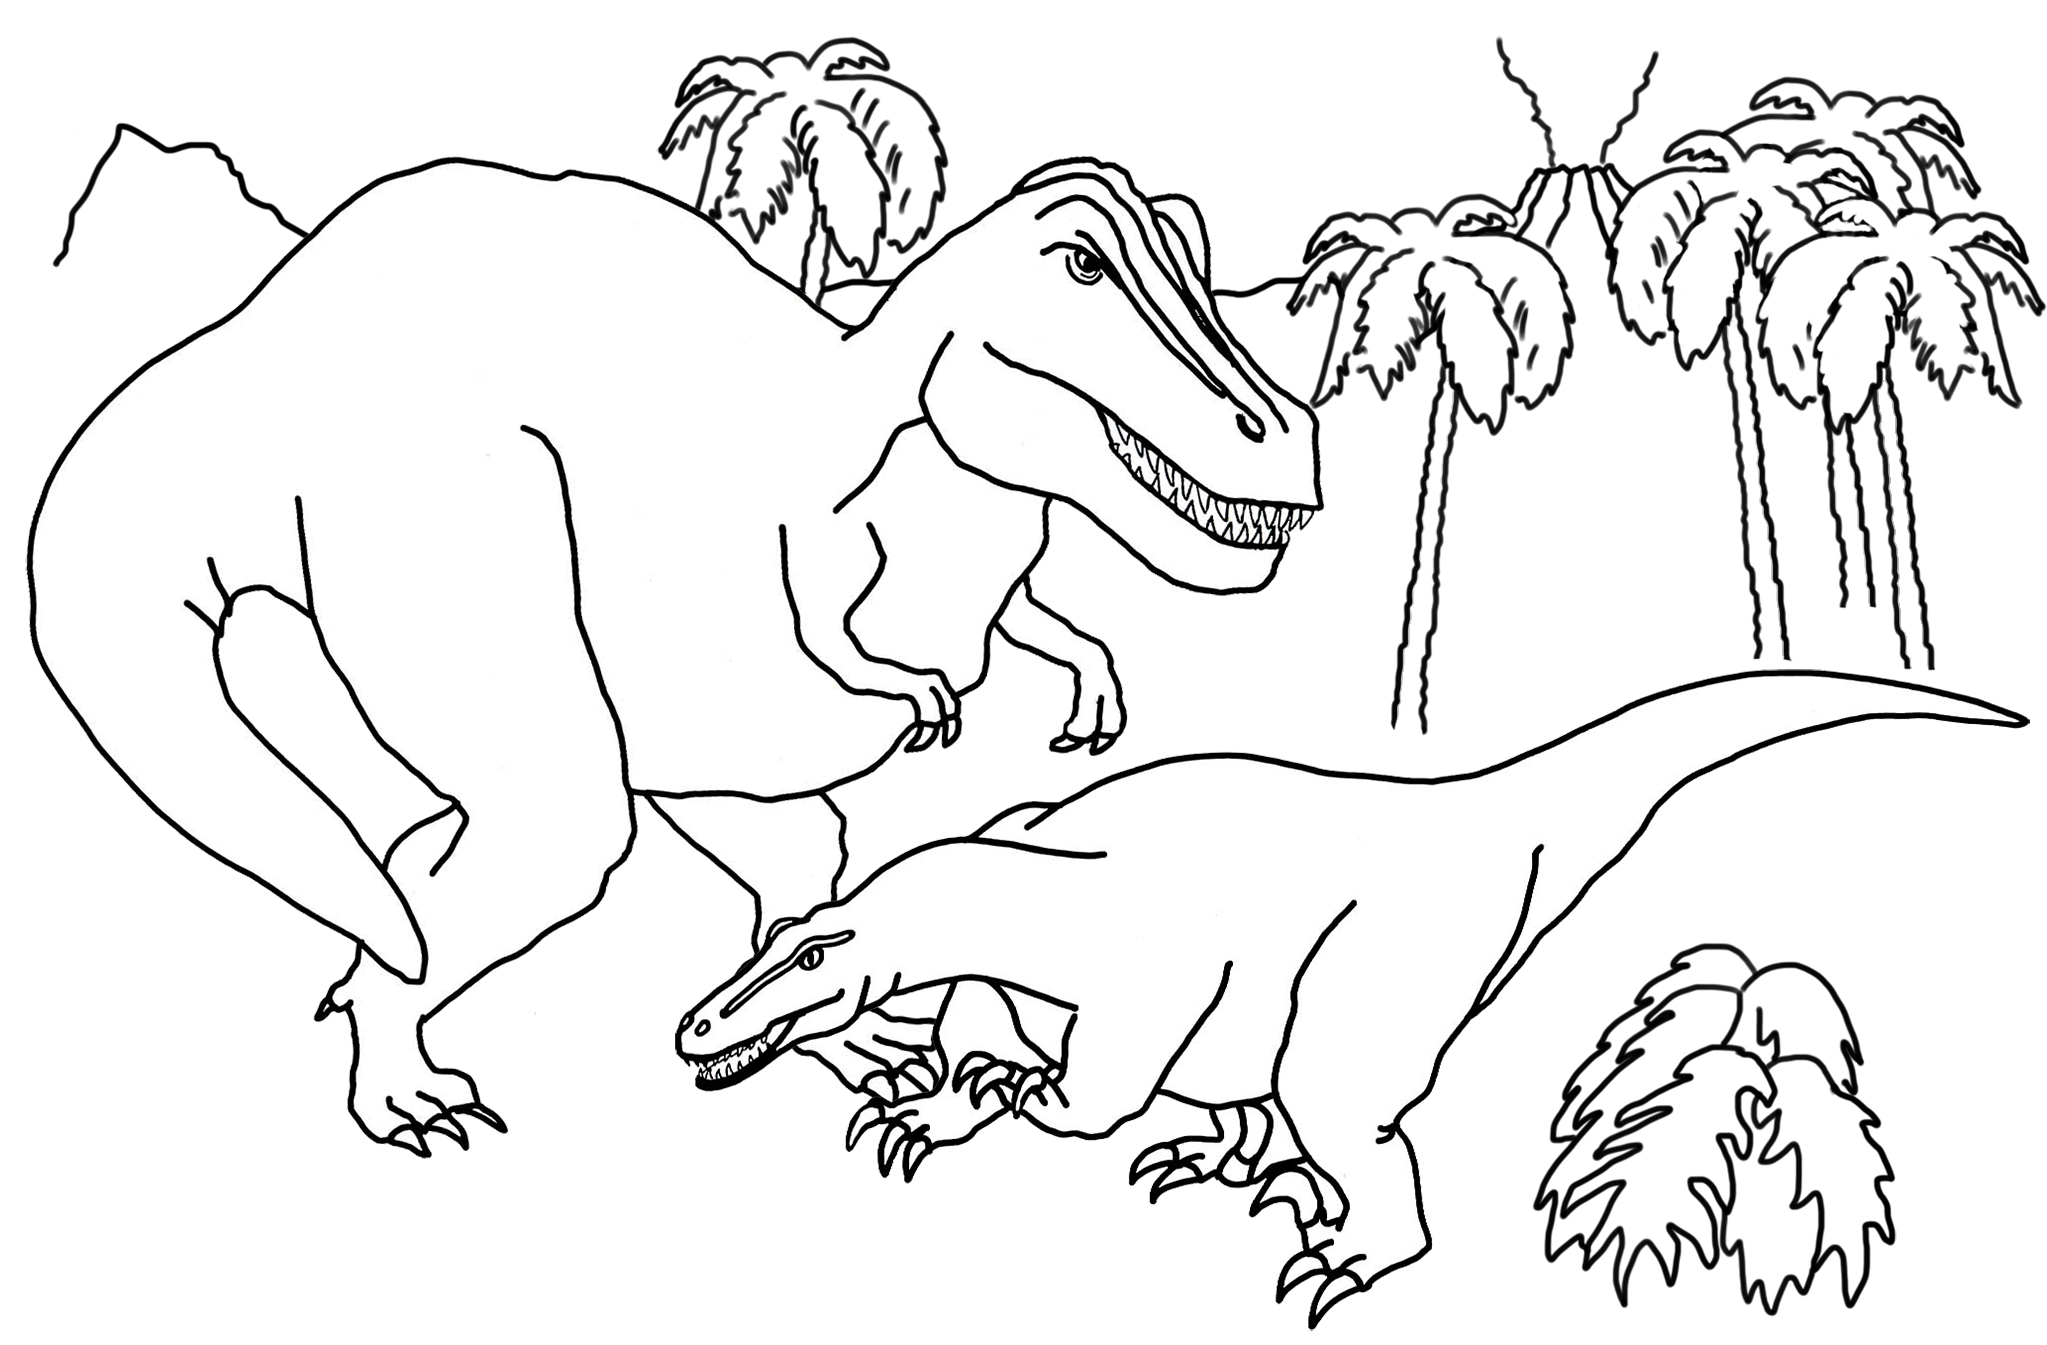 dinosaur coloring page with volcano